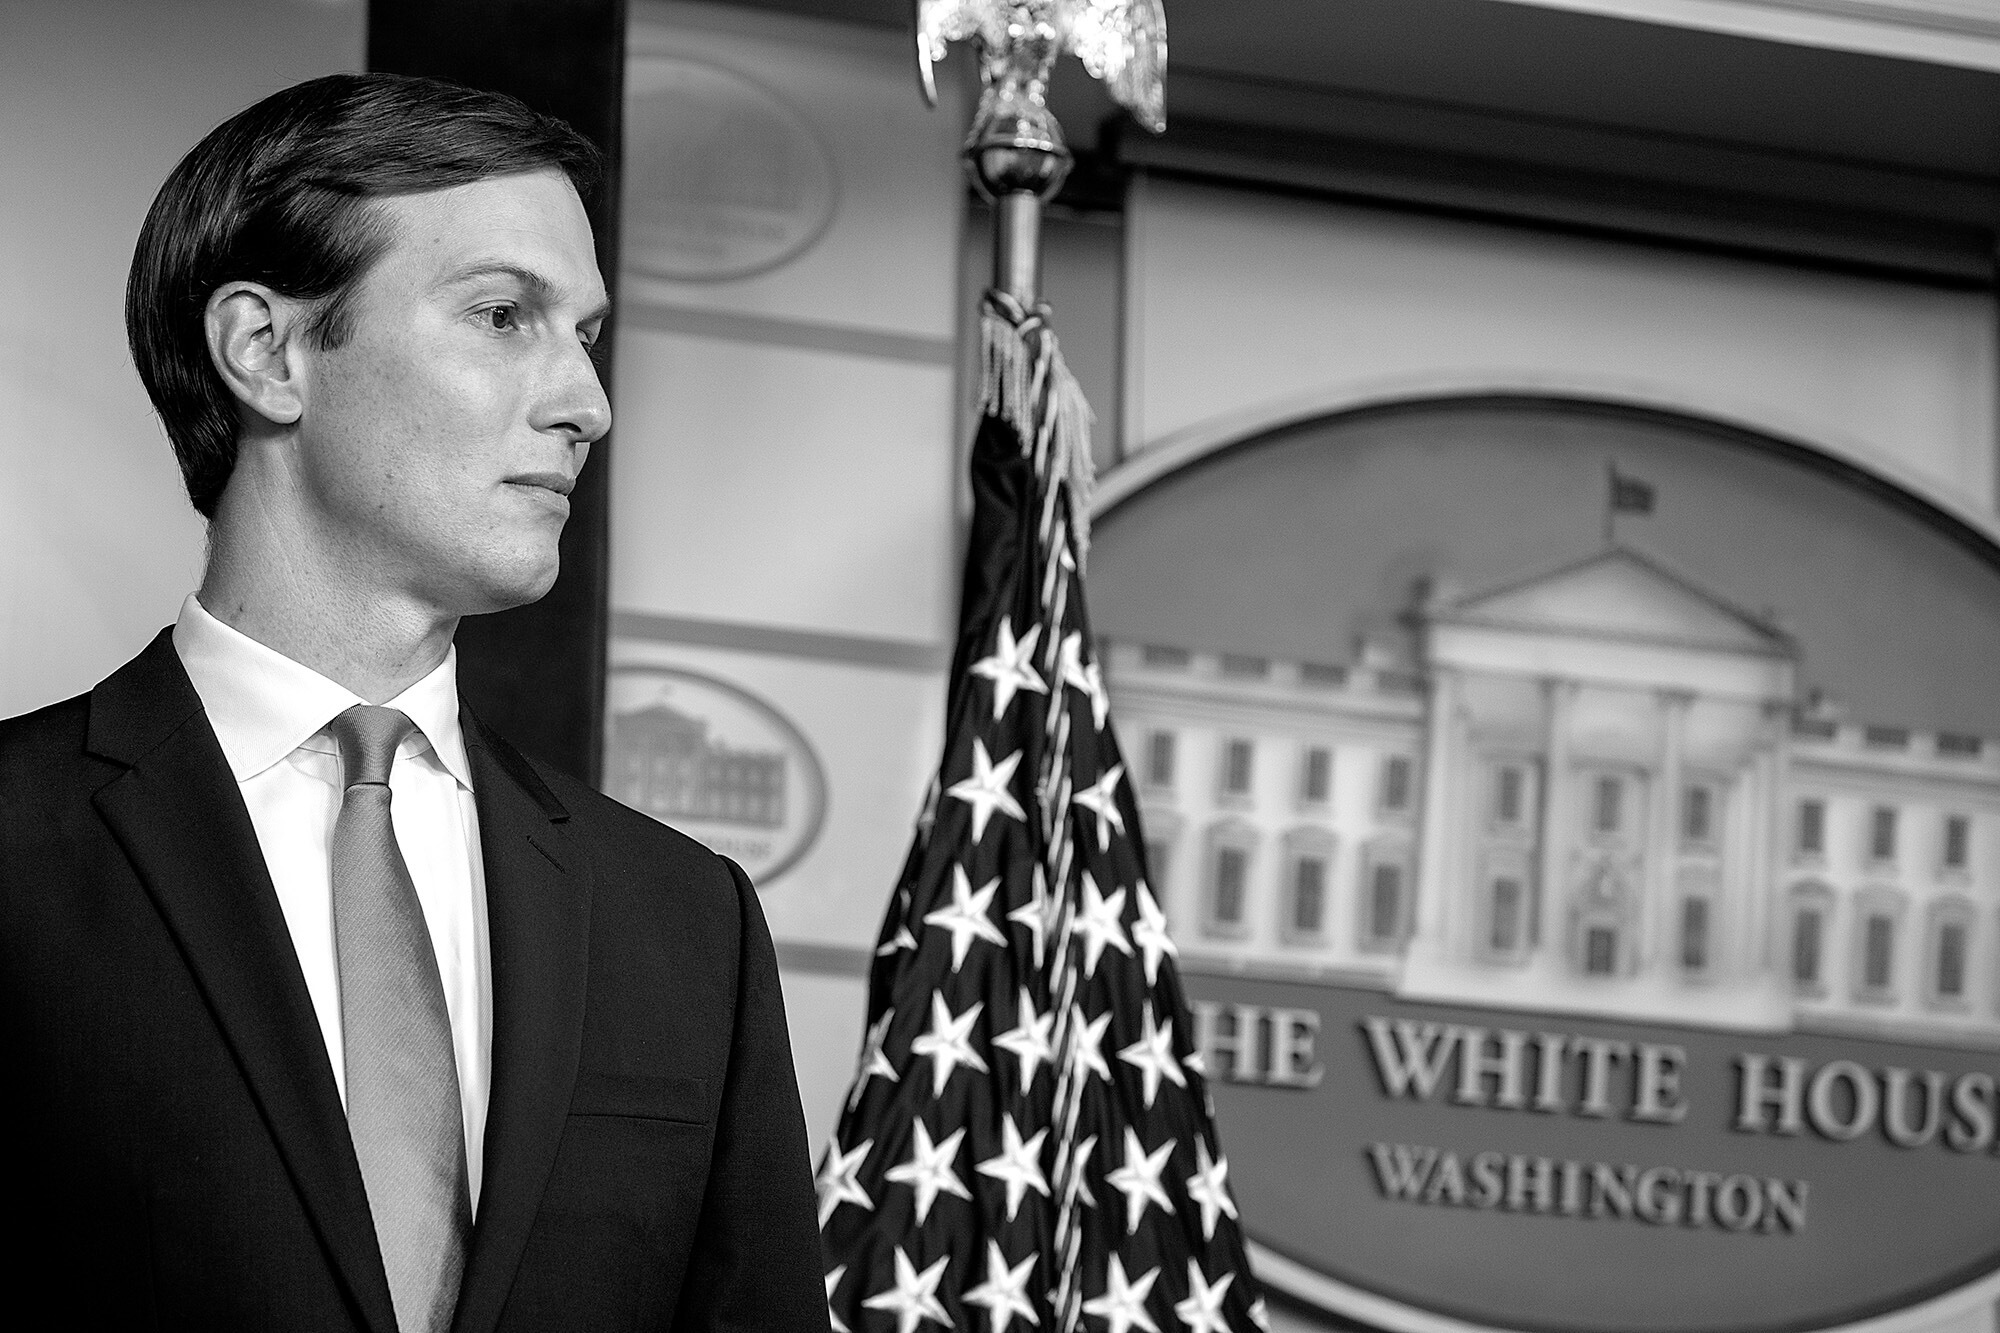 Donald Trump's decision to appoint his own family members to high-ranking White House positions resulted in disastrous policy choices, as was the case when his son-in-law Jared Kushner took a leading role in the administration's pandemic response despite his lack of experience.